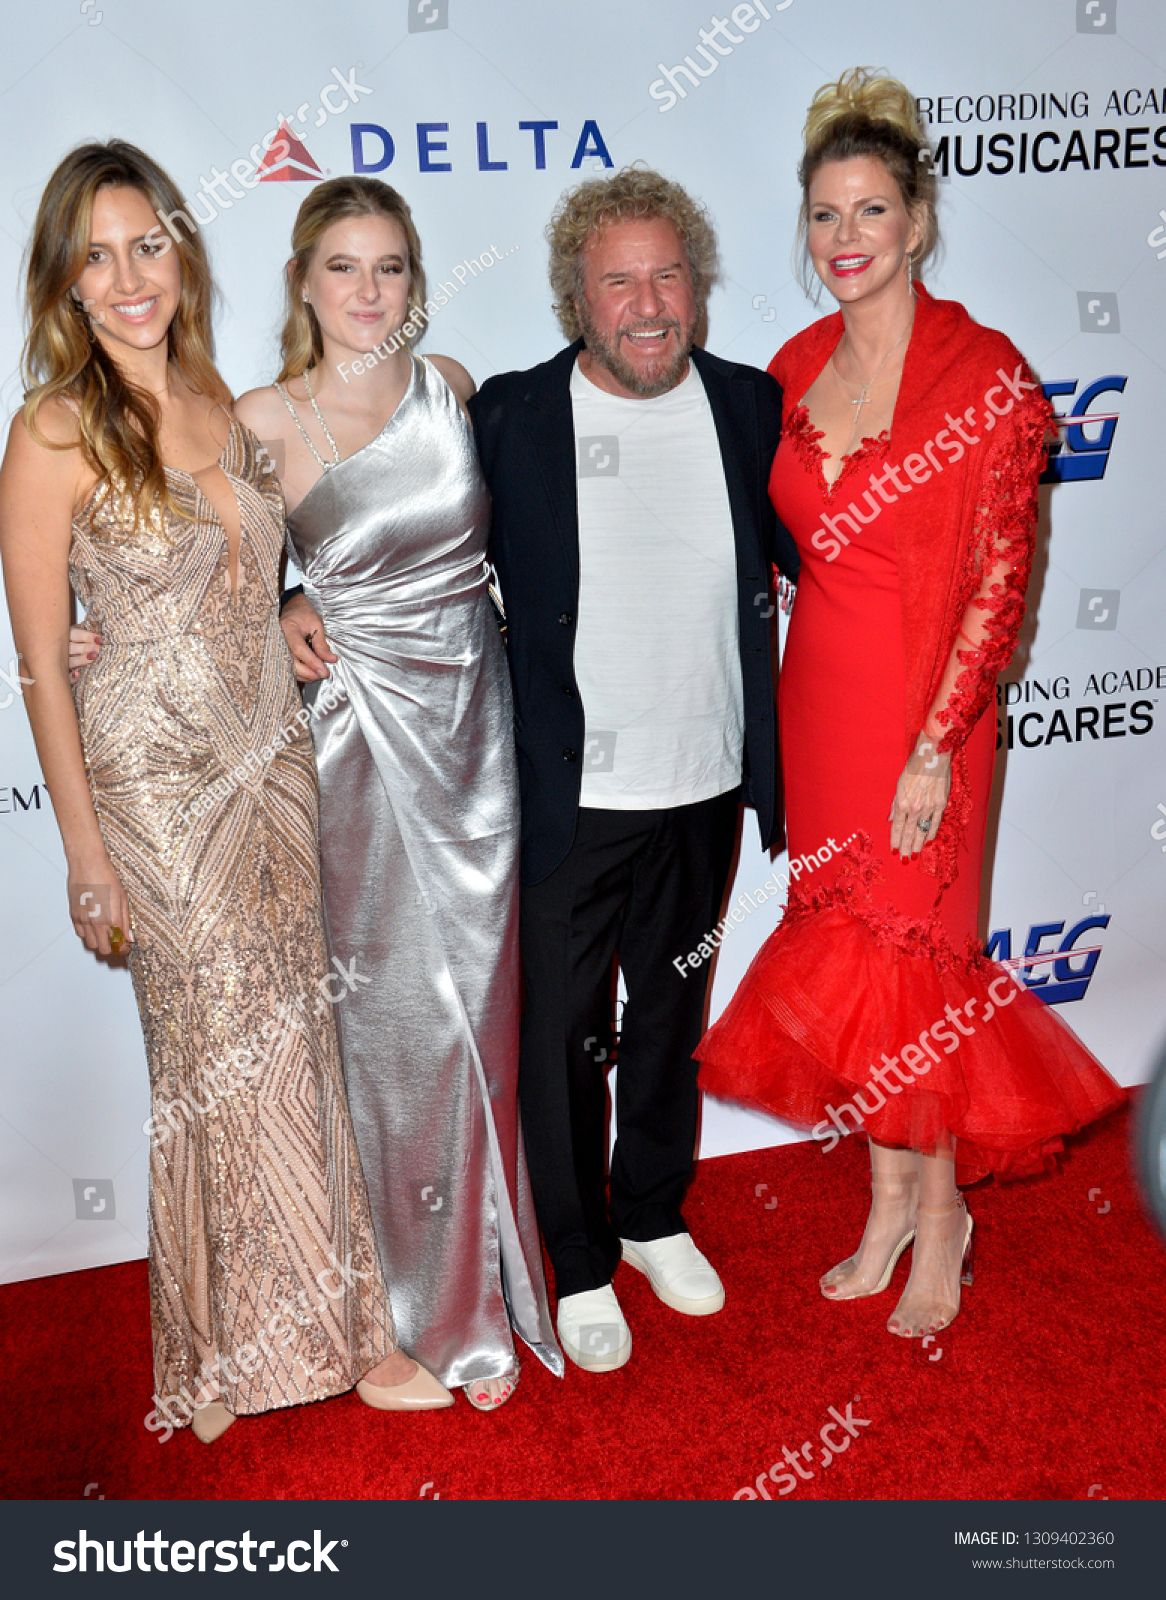 Los Angeles Ca February 08 2019 Sammy Hagar Kari Karte Kama Hagar Samantha Hagar At The 2019 Musicar In 2020 Stock Photos Photo Editing Artist Business Cards